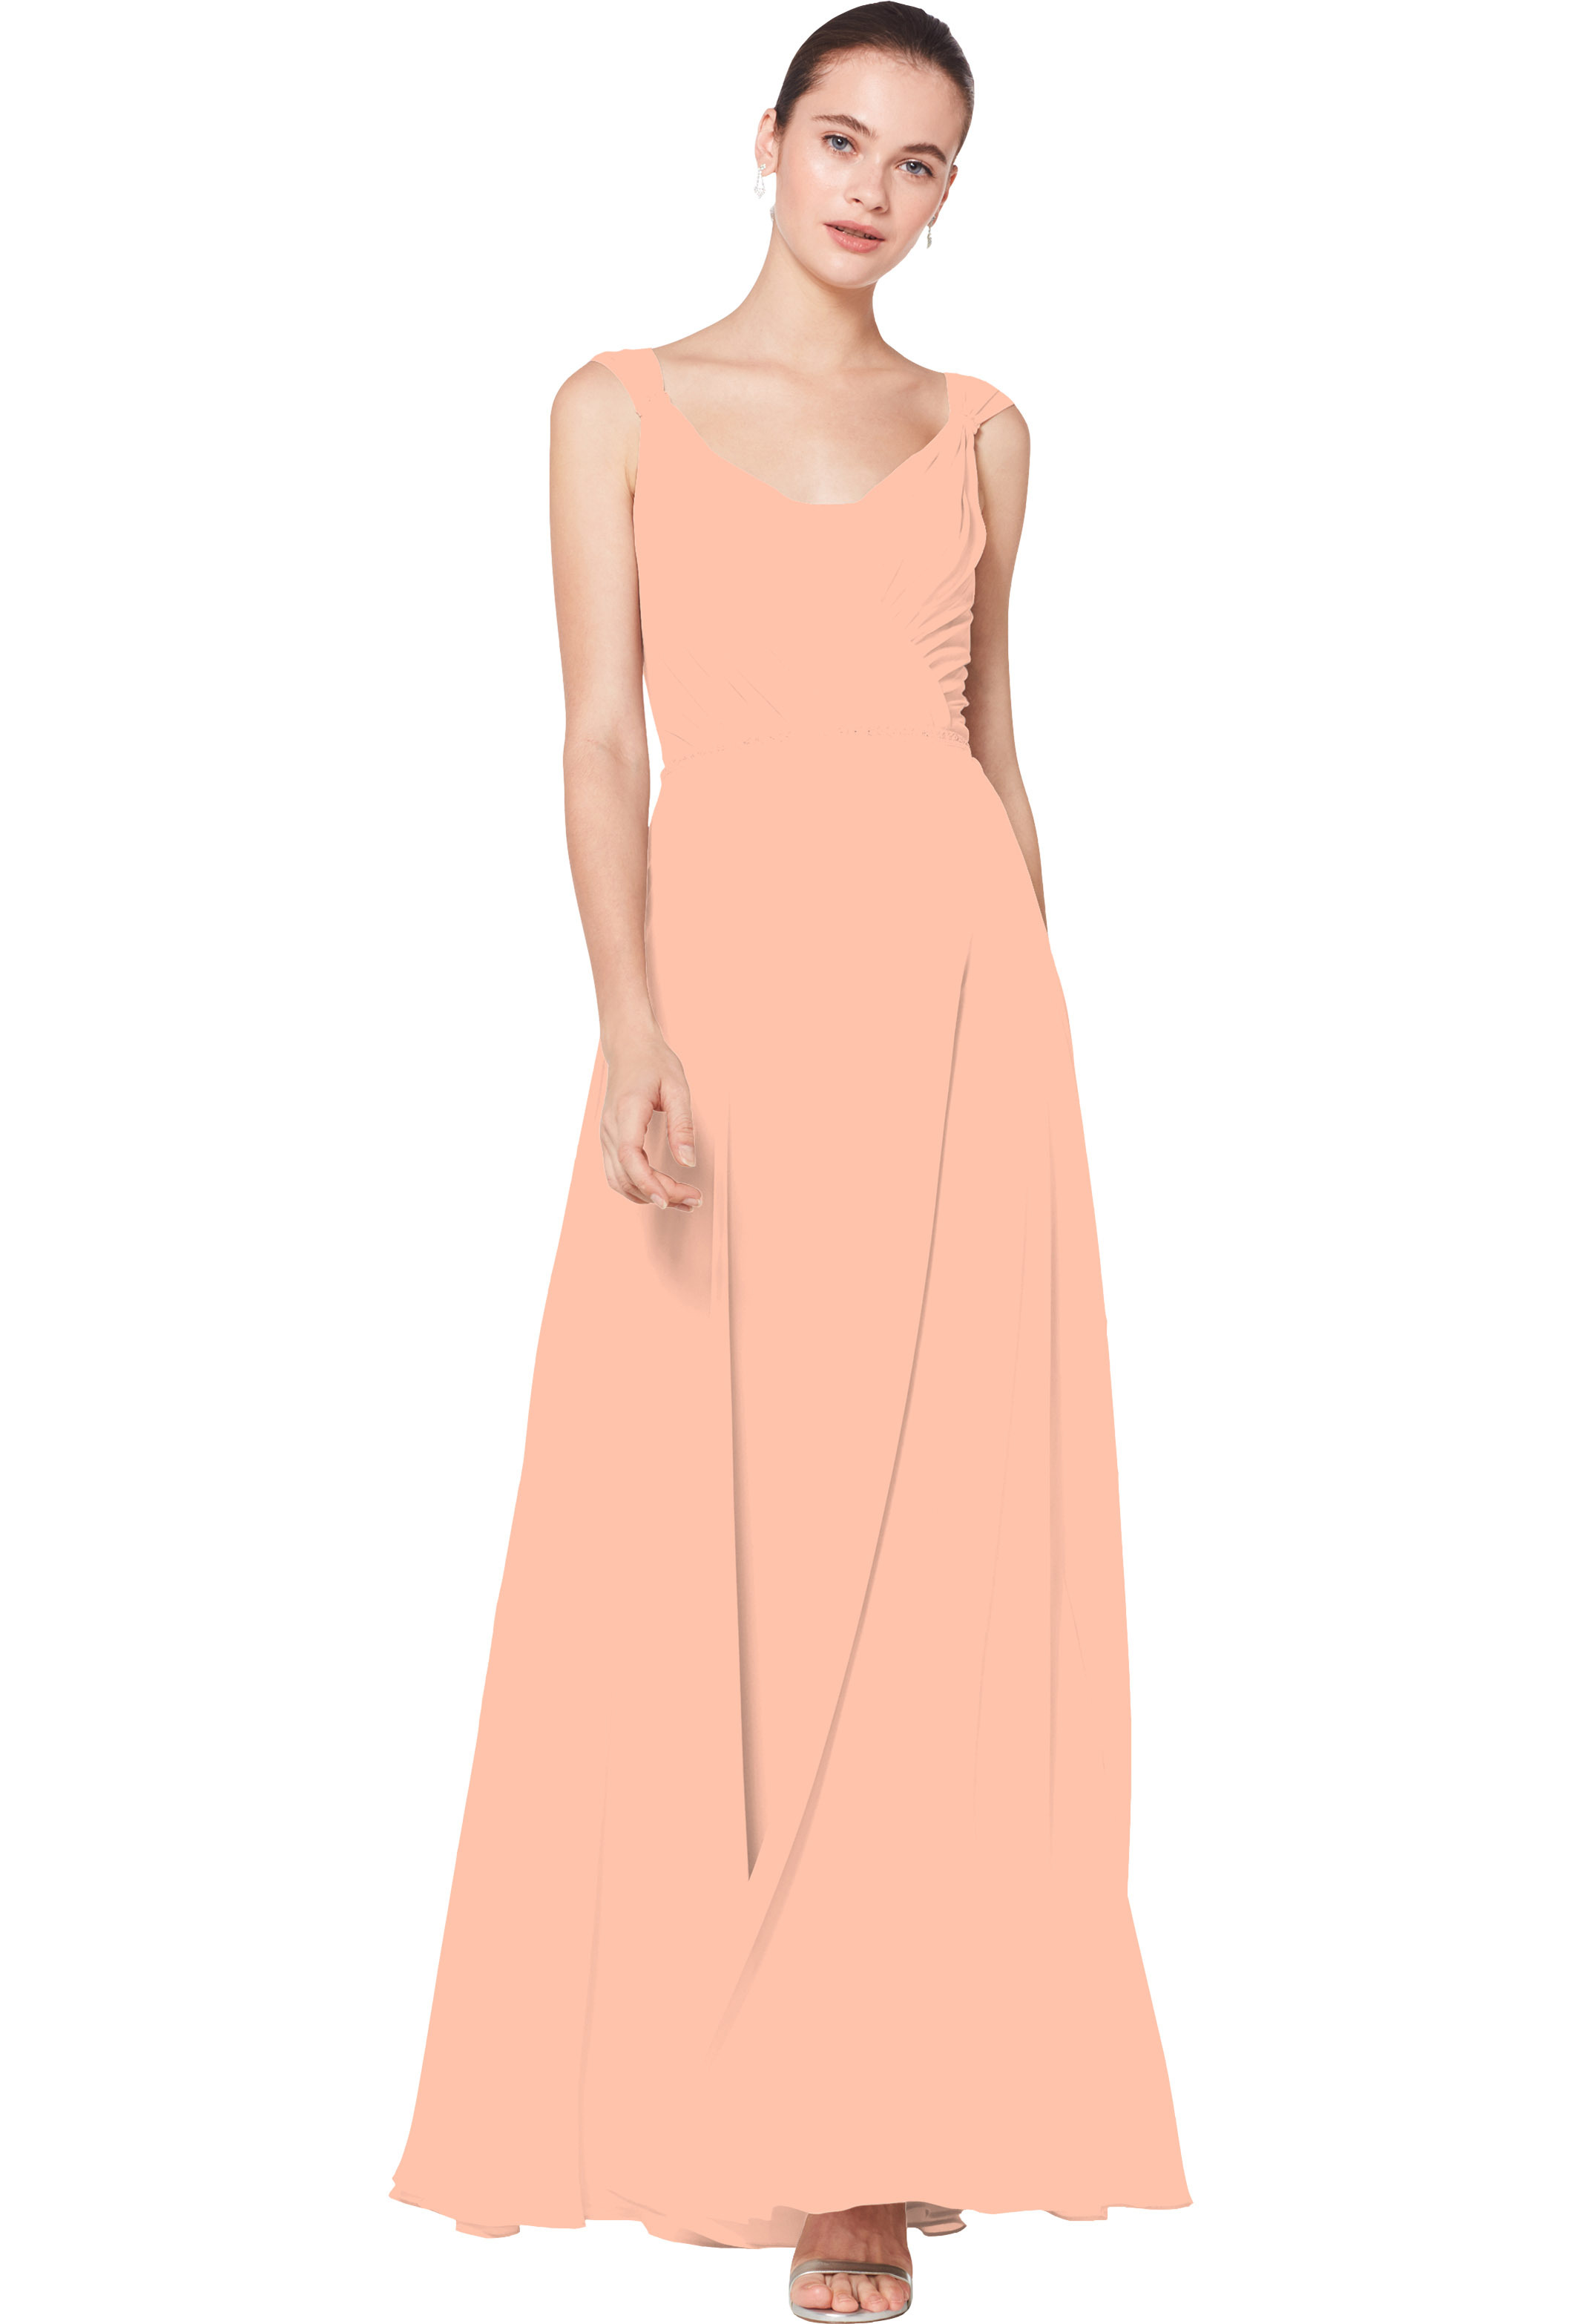 Bill Levkoff PEACH Chiffon Sleeveless A-line gown, $230.00 Front